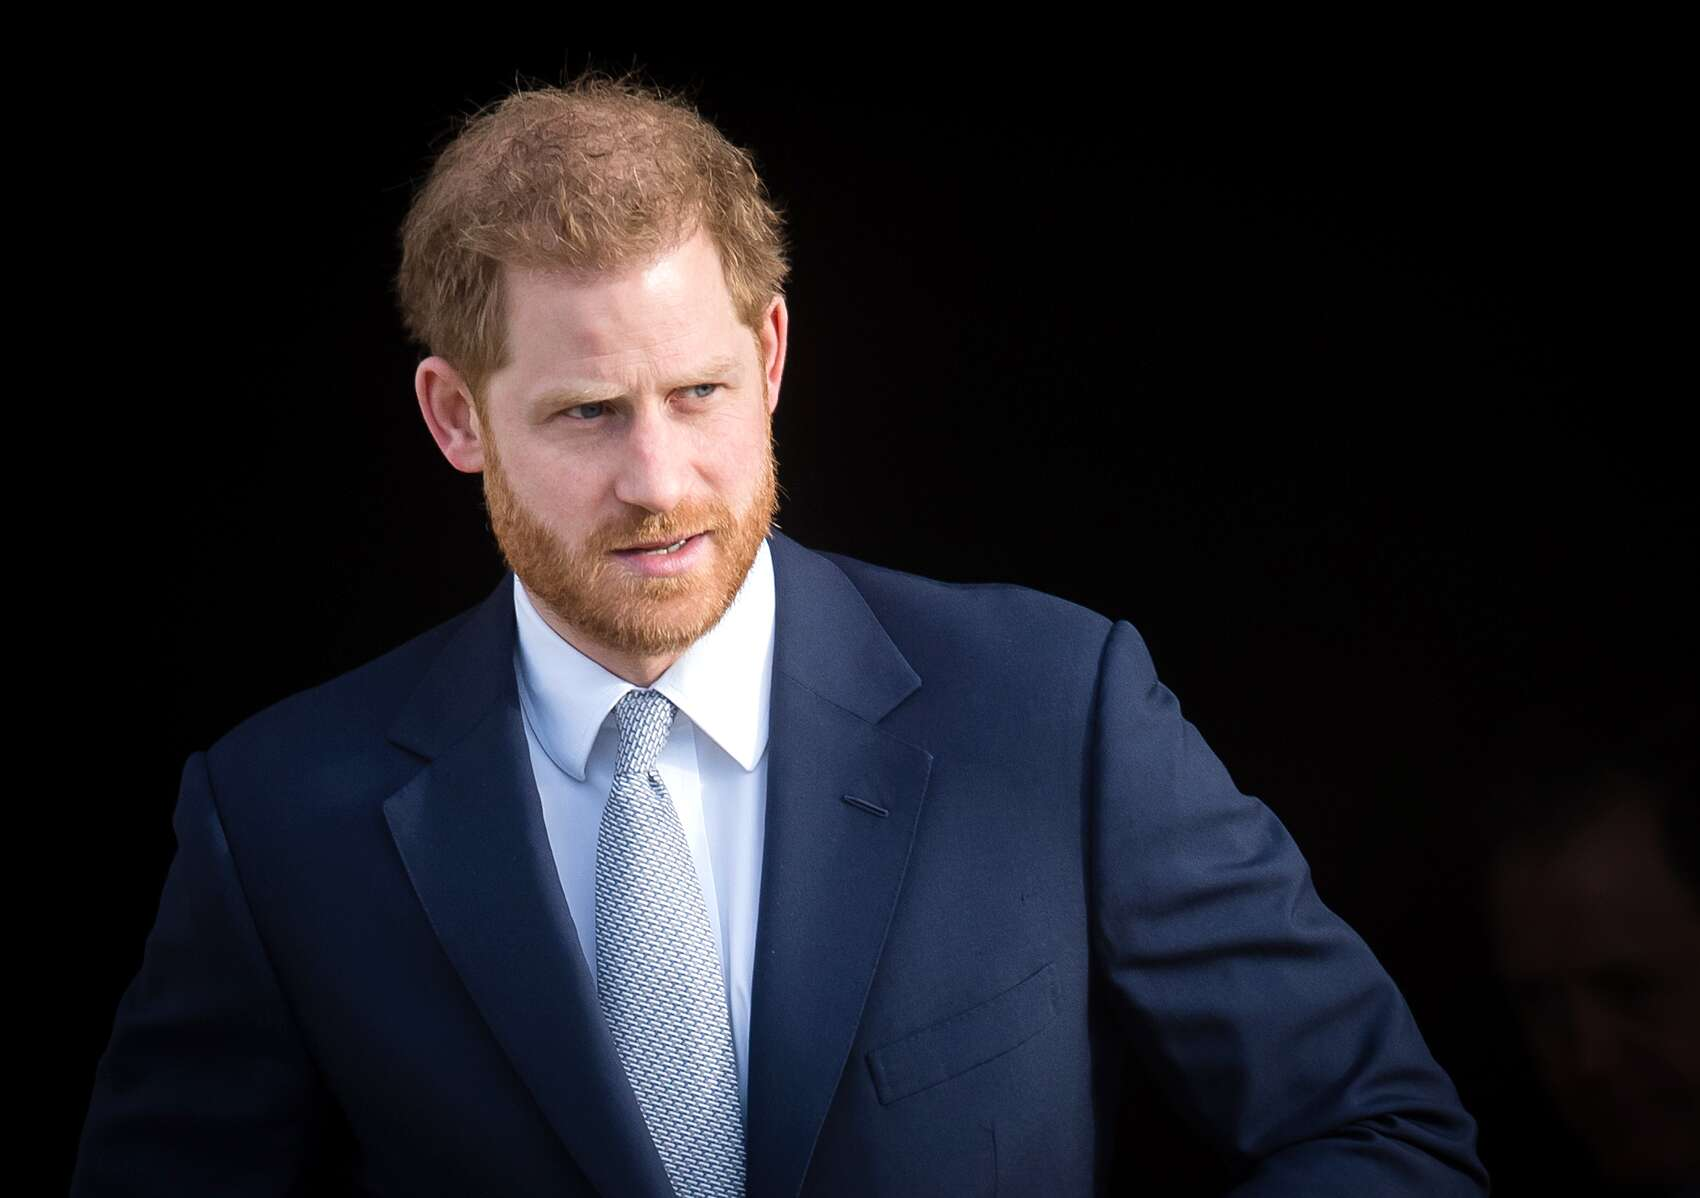 Prince Harry to release intimate tell all memoir